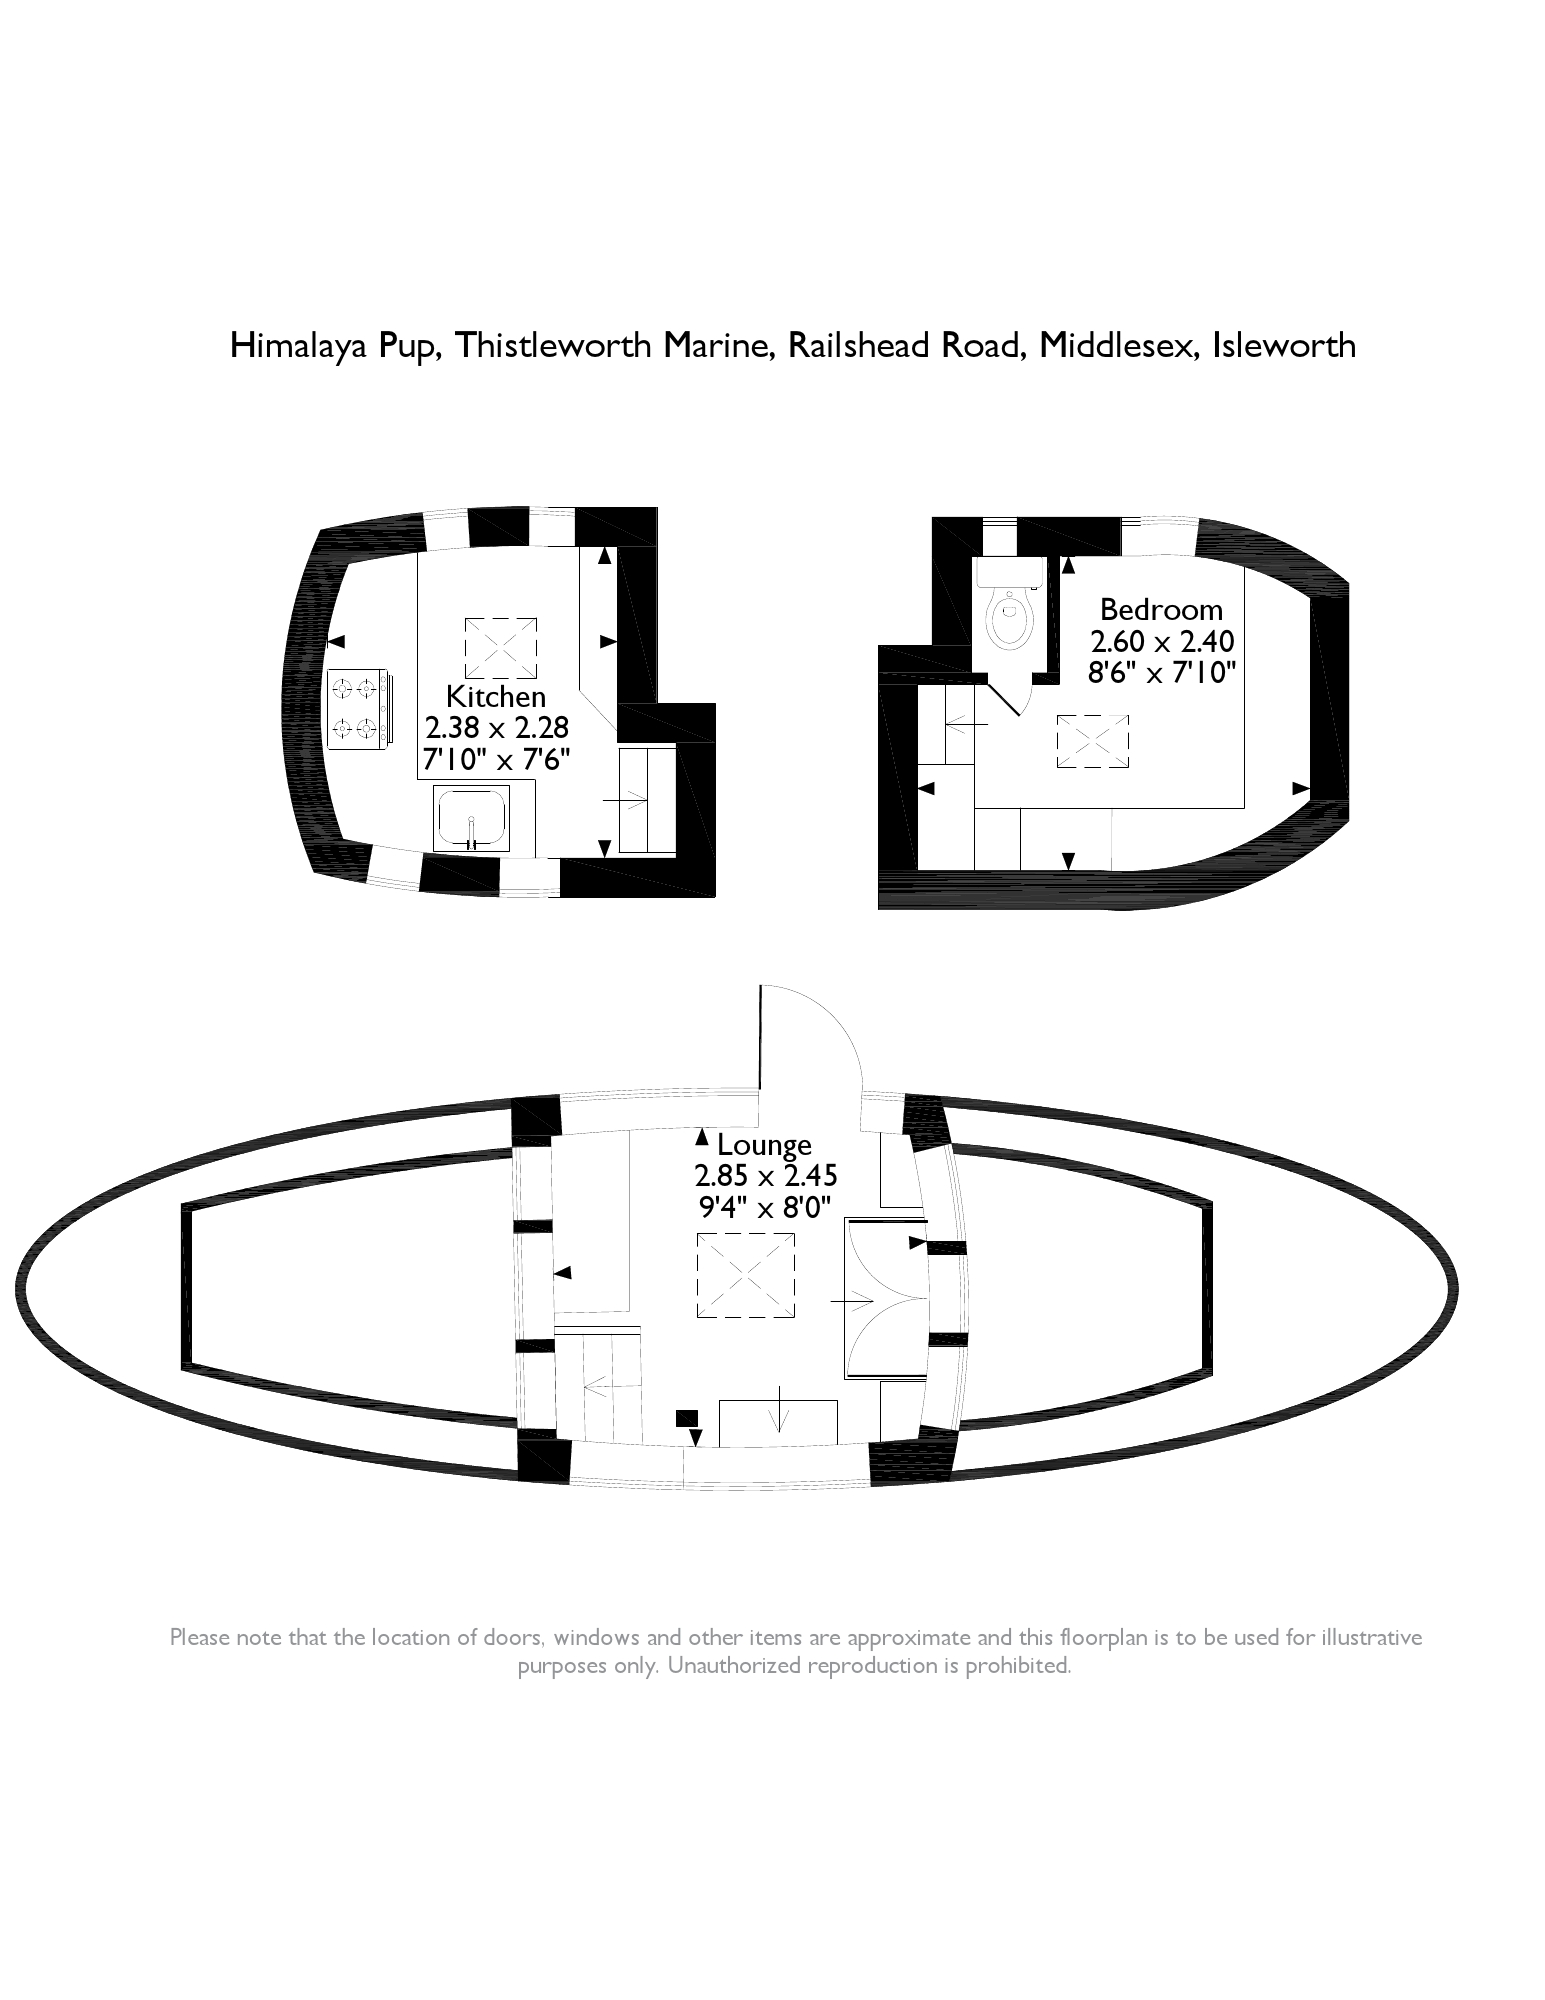 Thistleworth Marine, Isleworth, Middlesex TW7 floor plan